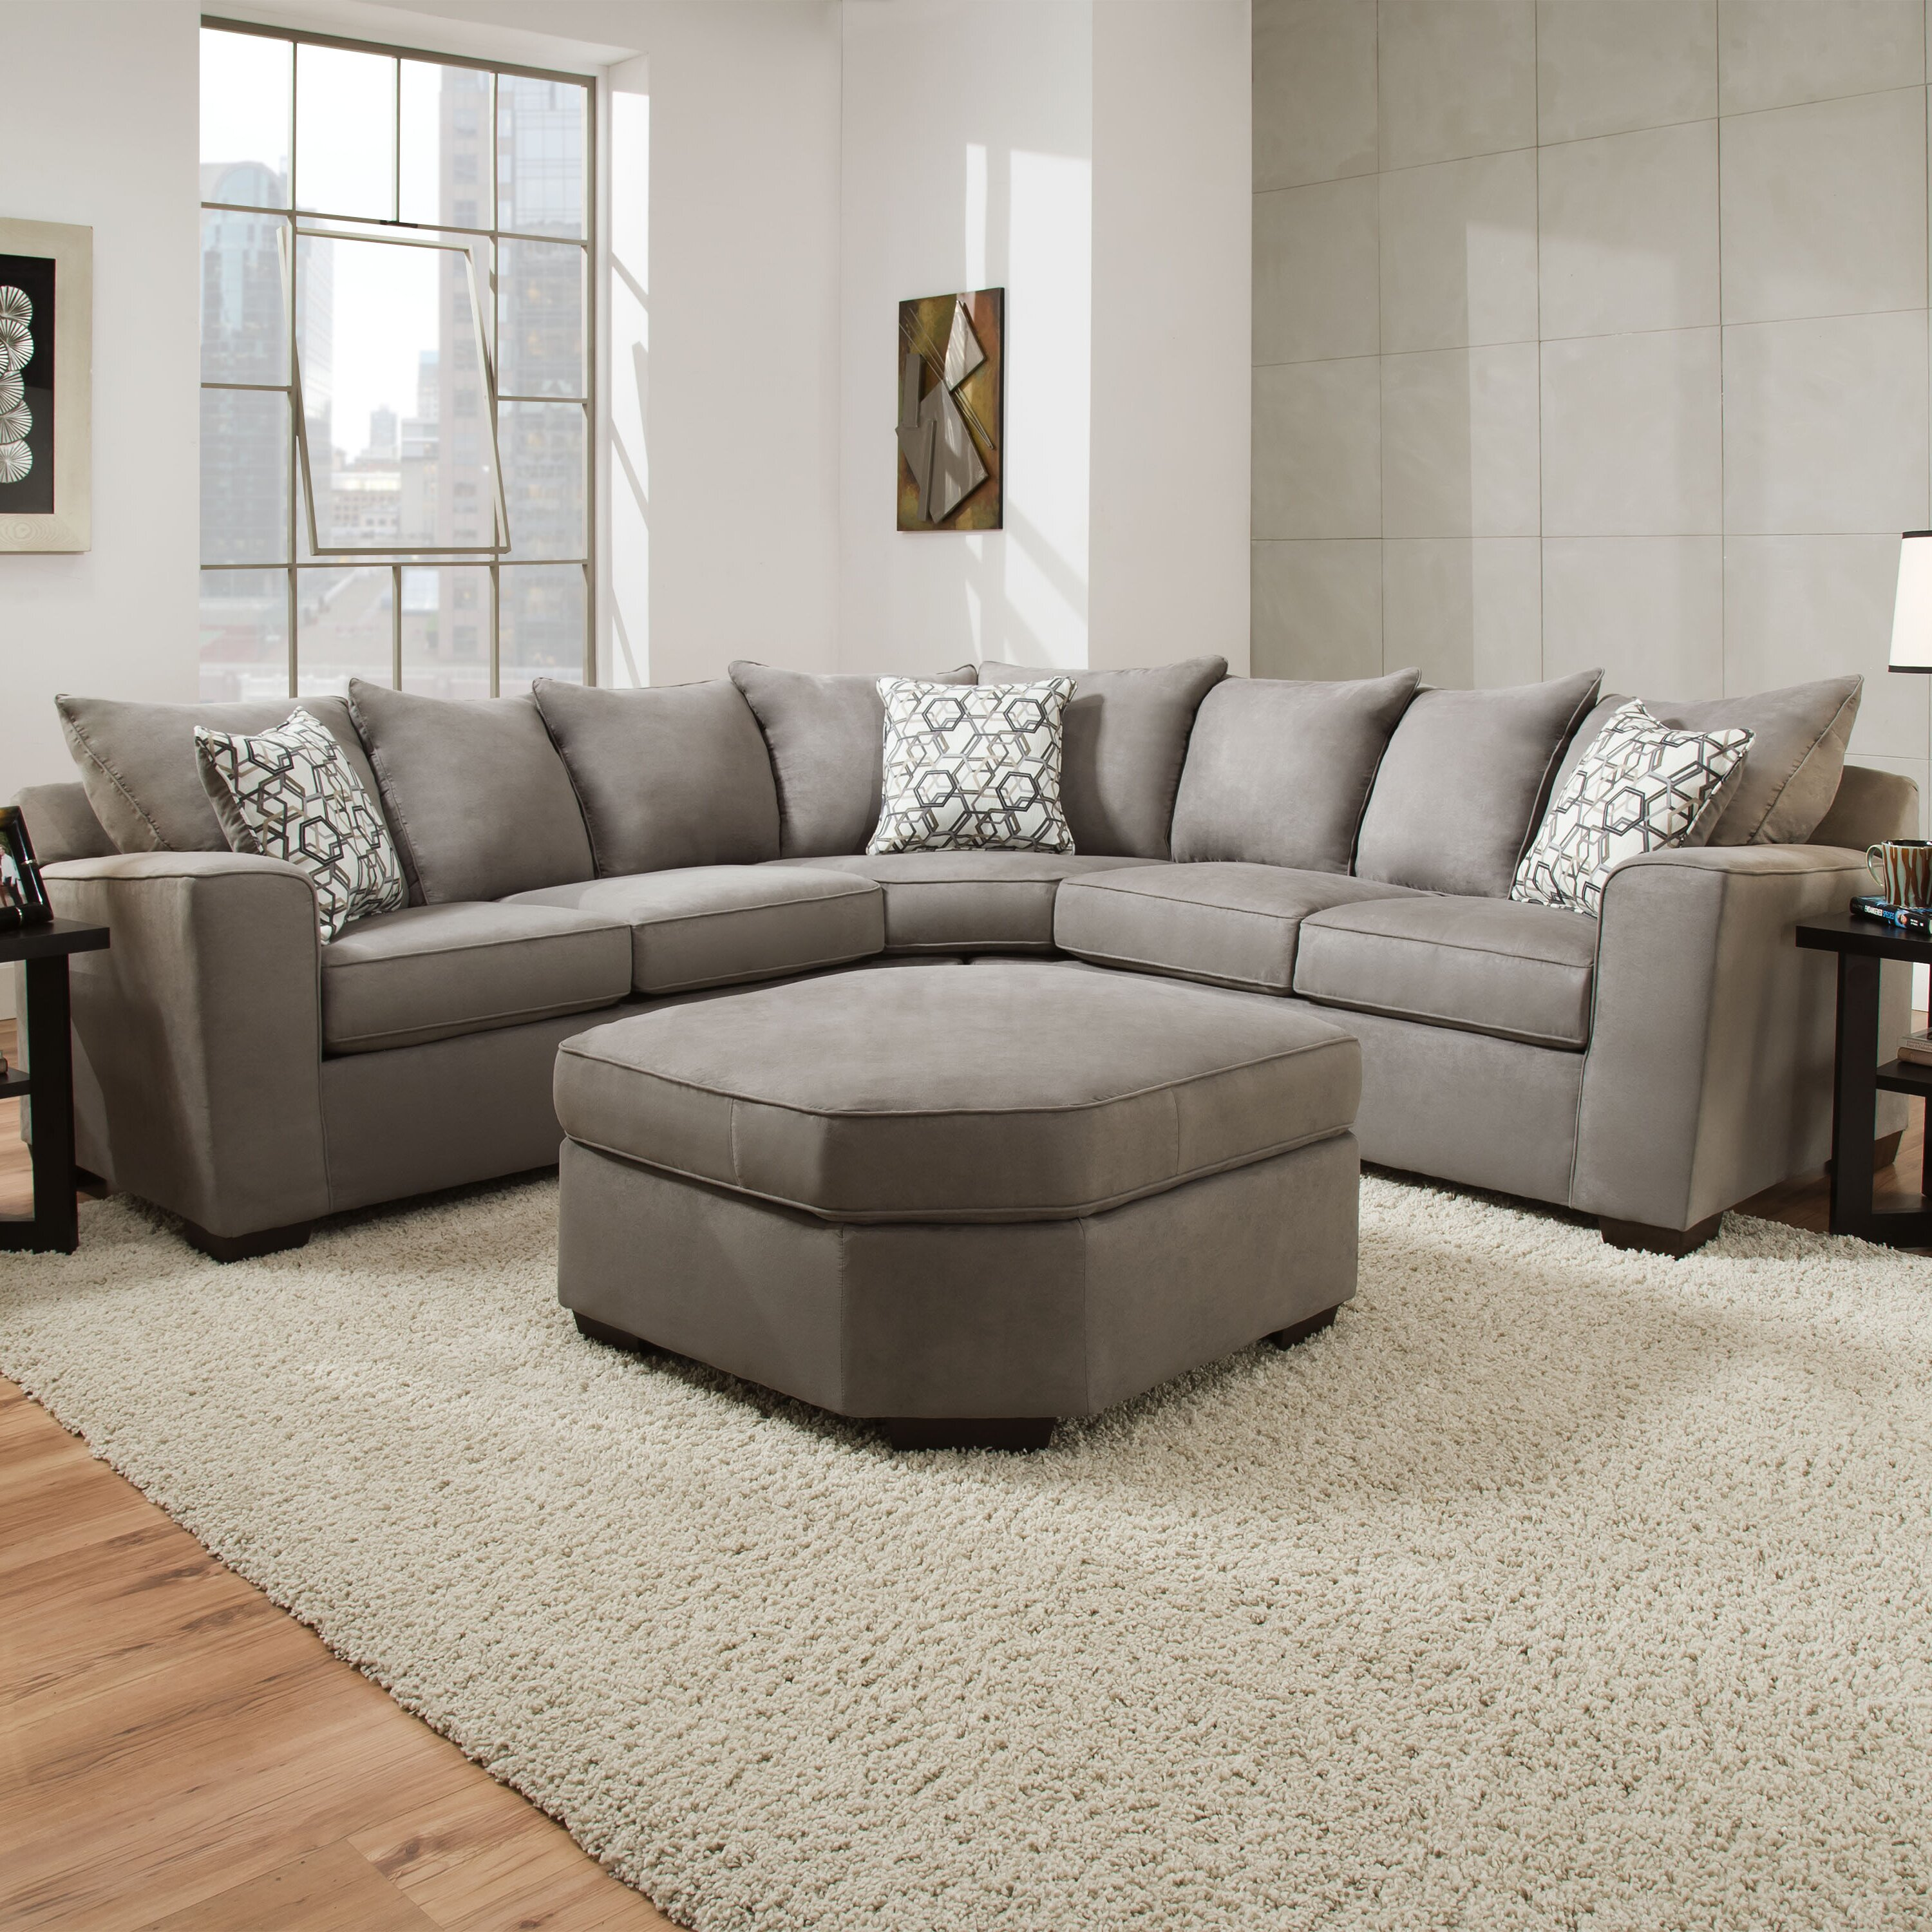 Latitude run daisy sectional by simmons upholstery for Garrison 2 pc leather sectional sofa reviews